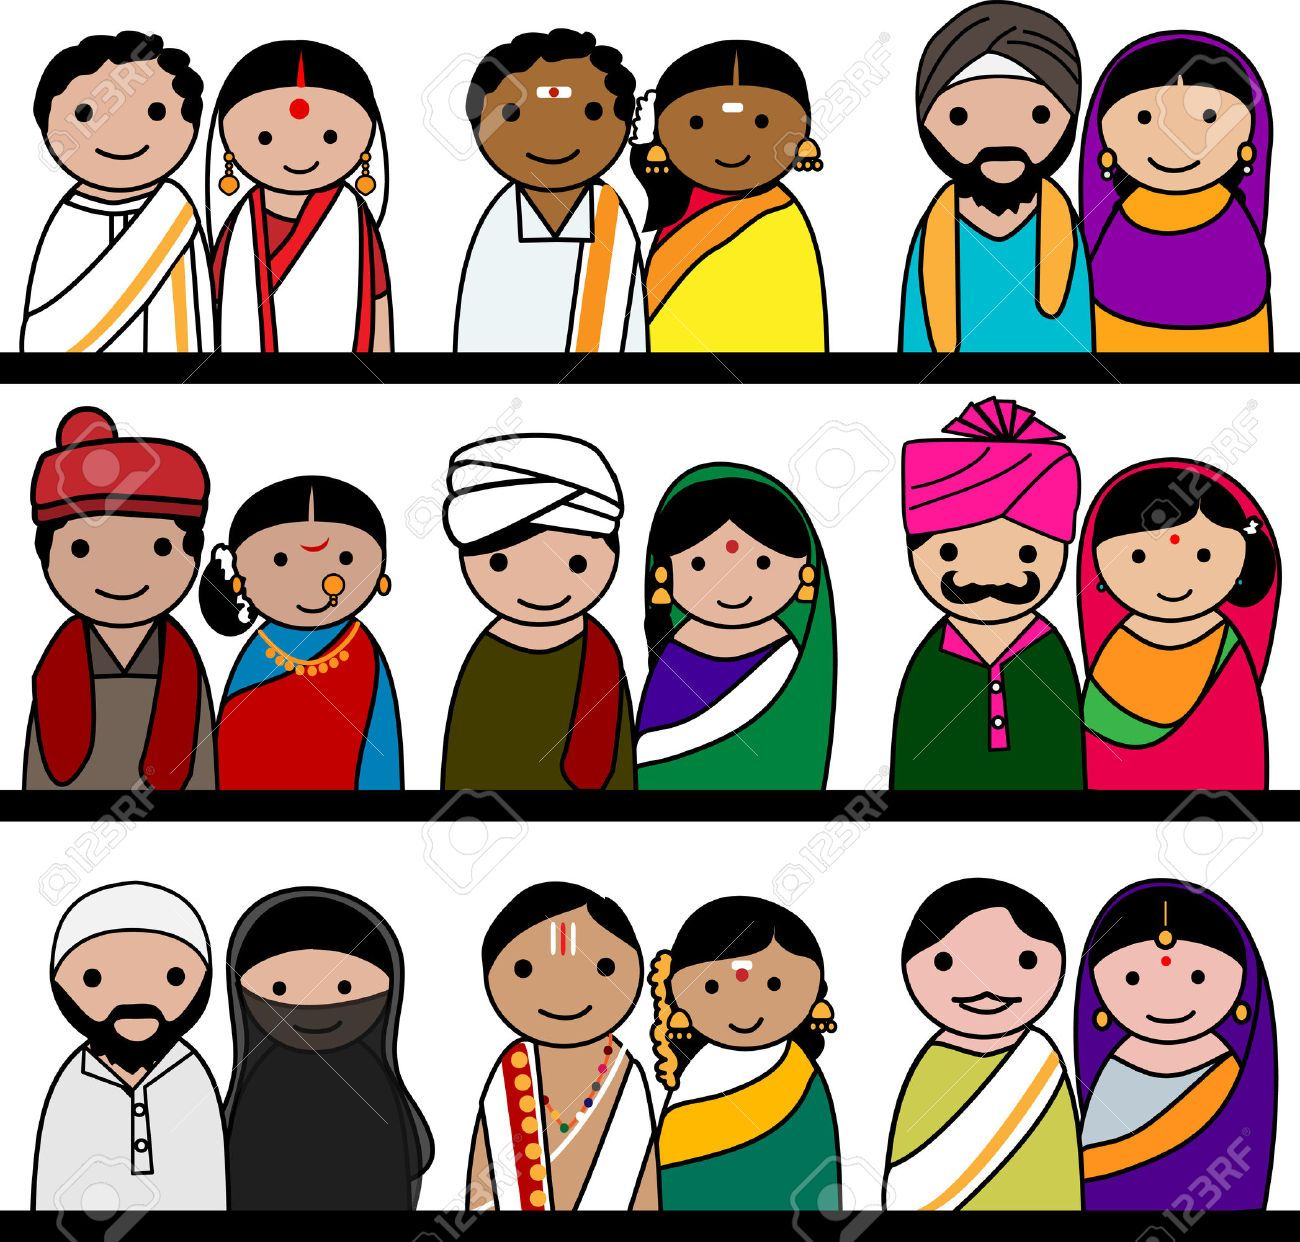 Crowd Of Indian Women Vector Avatars Stock Vector: 31385122-Indian-women-and-men-avatar-illustration-Indian